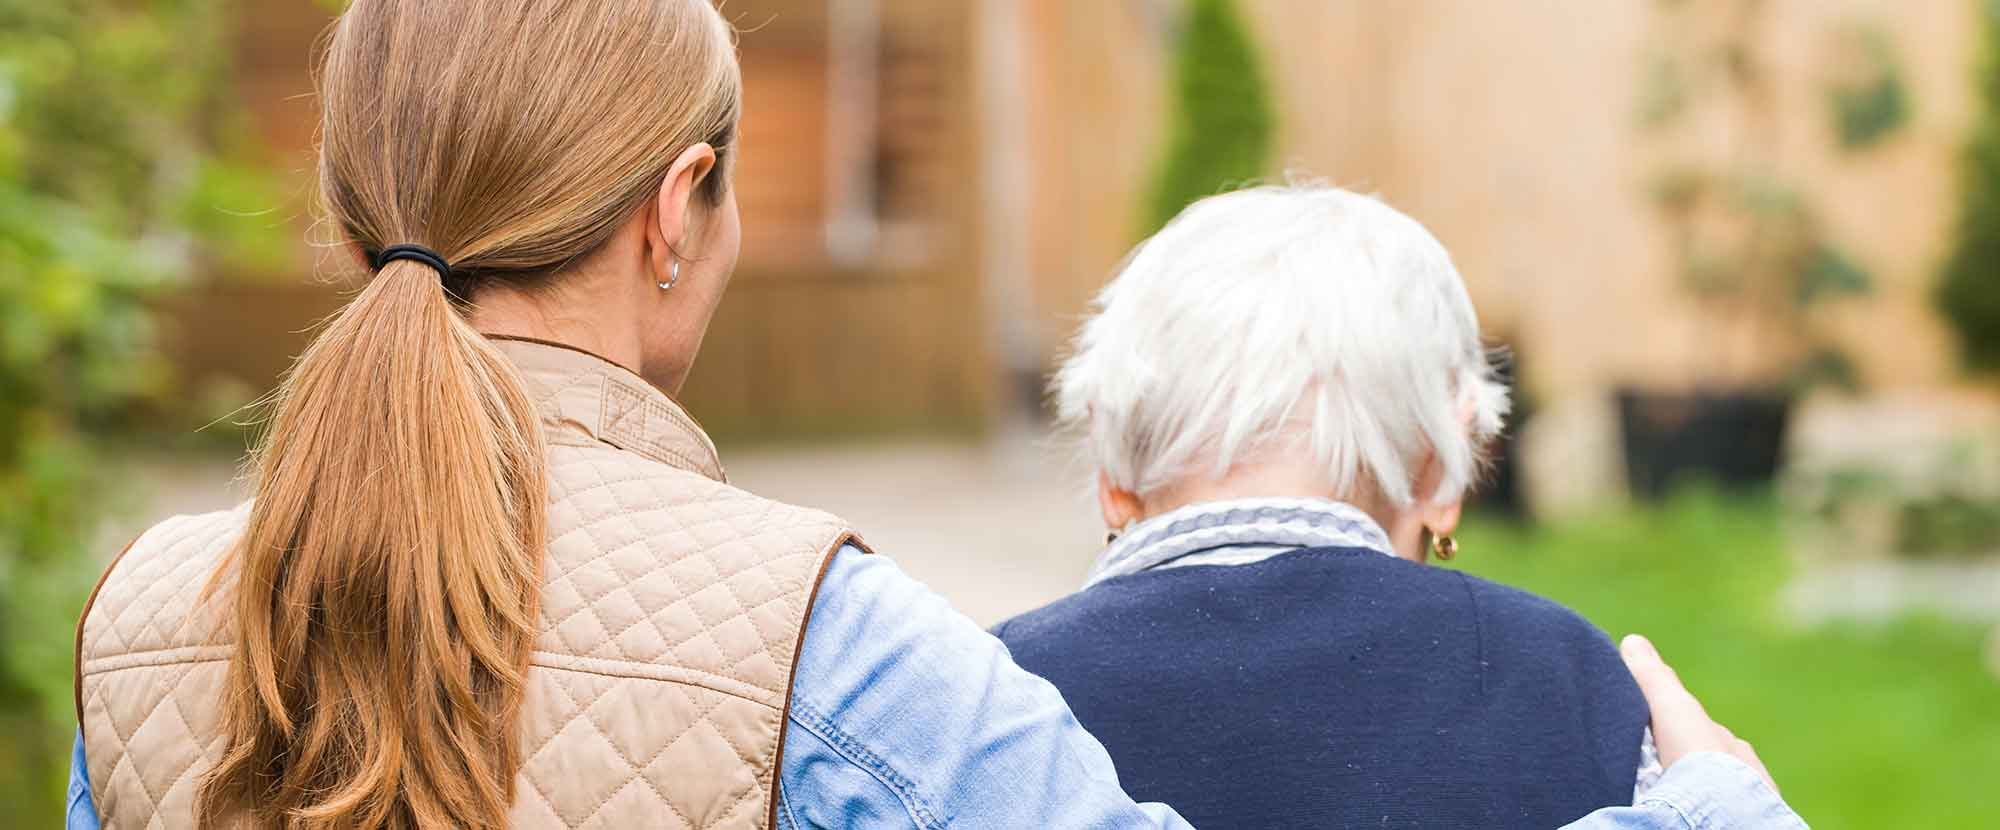 By 2037, the number of carers in the UK is likely to have reached 9 million